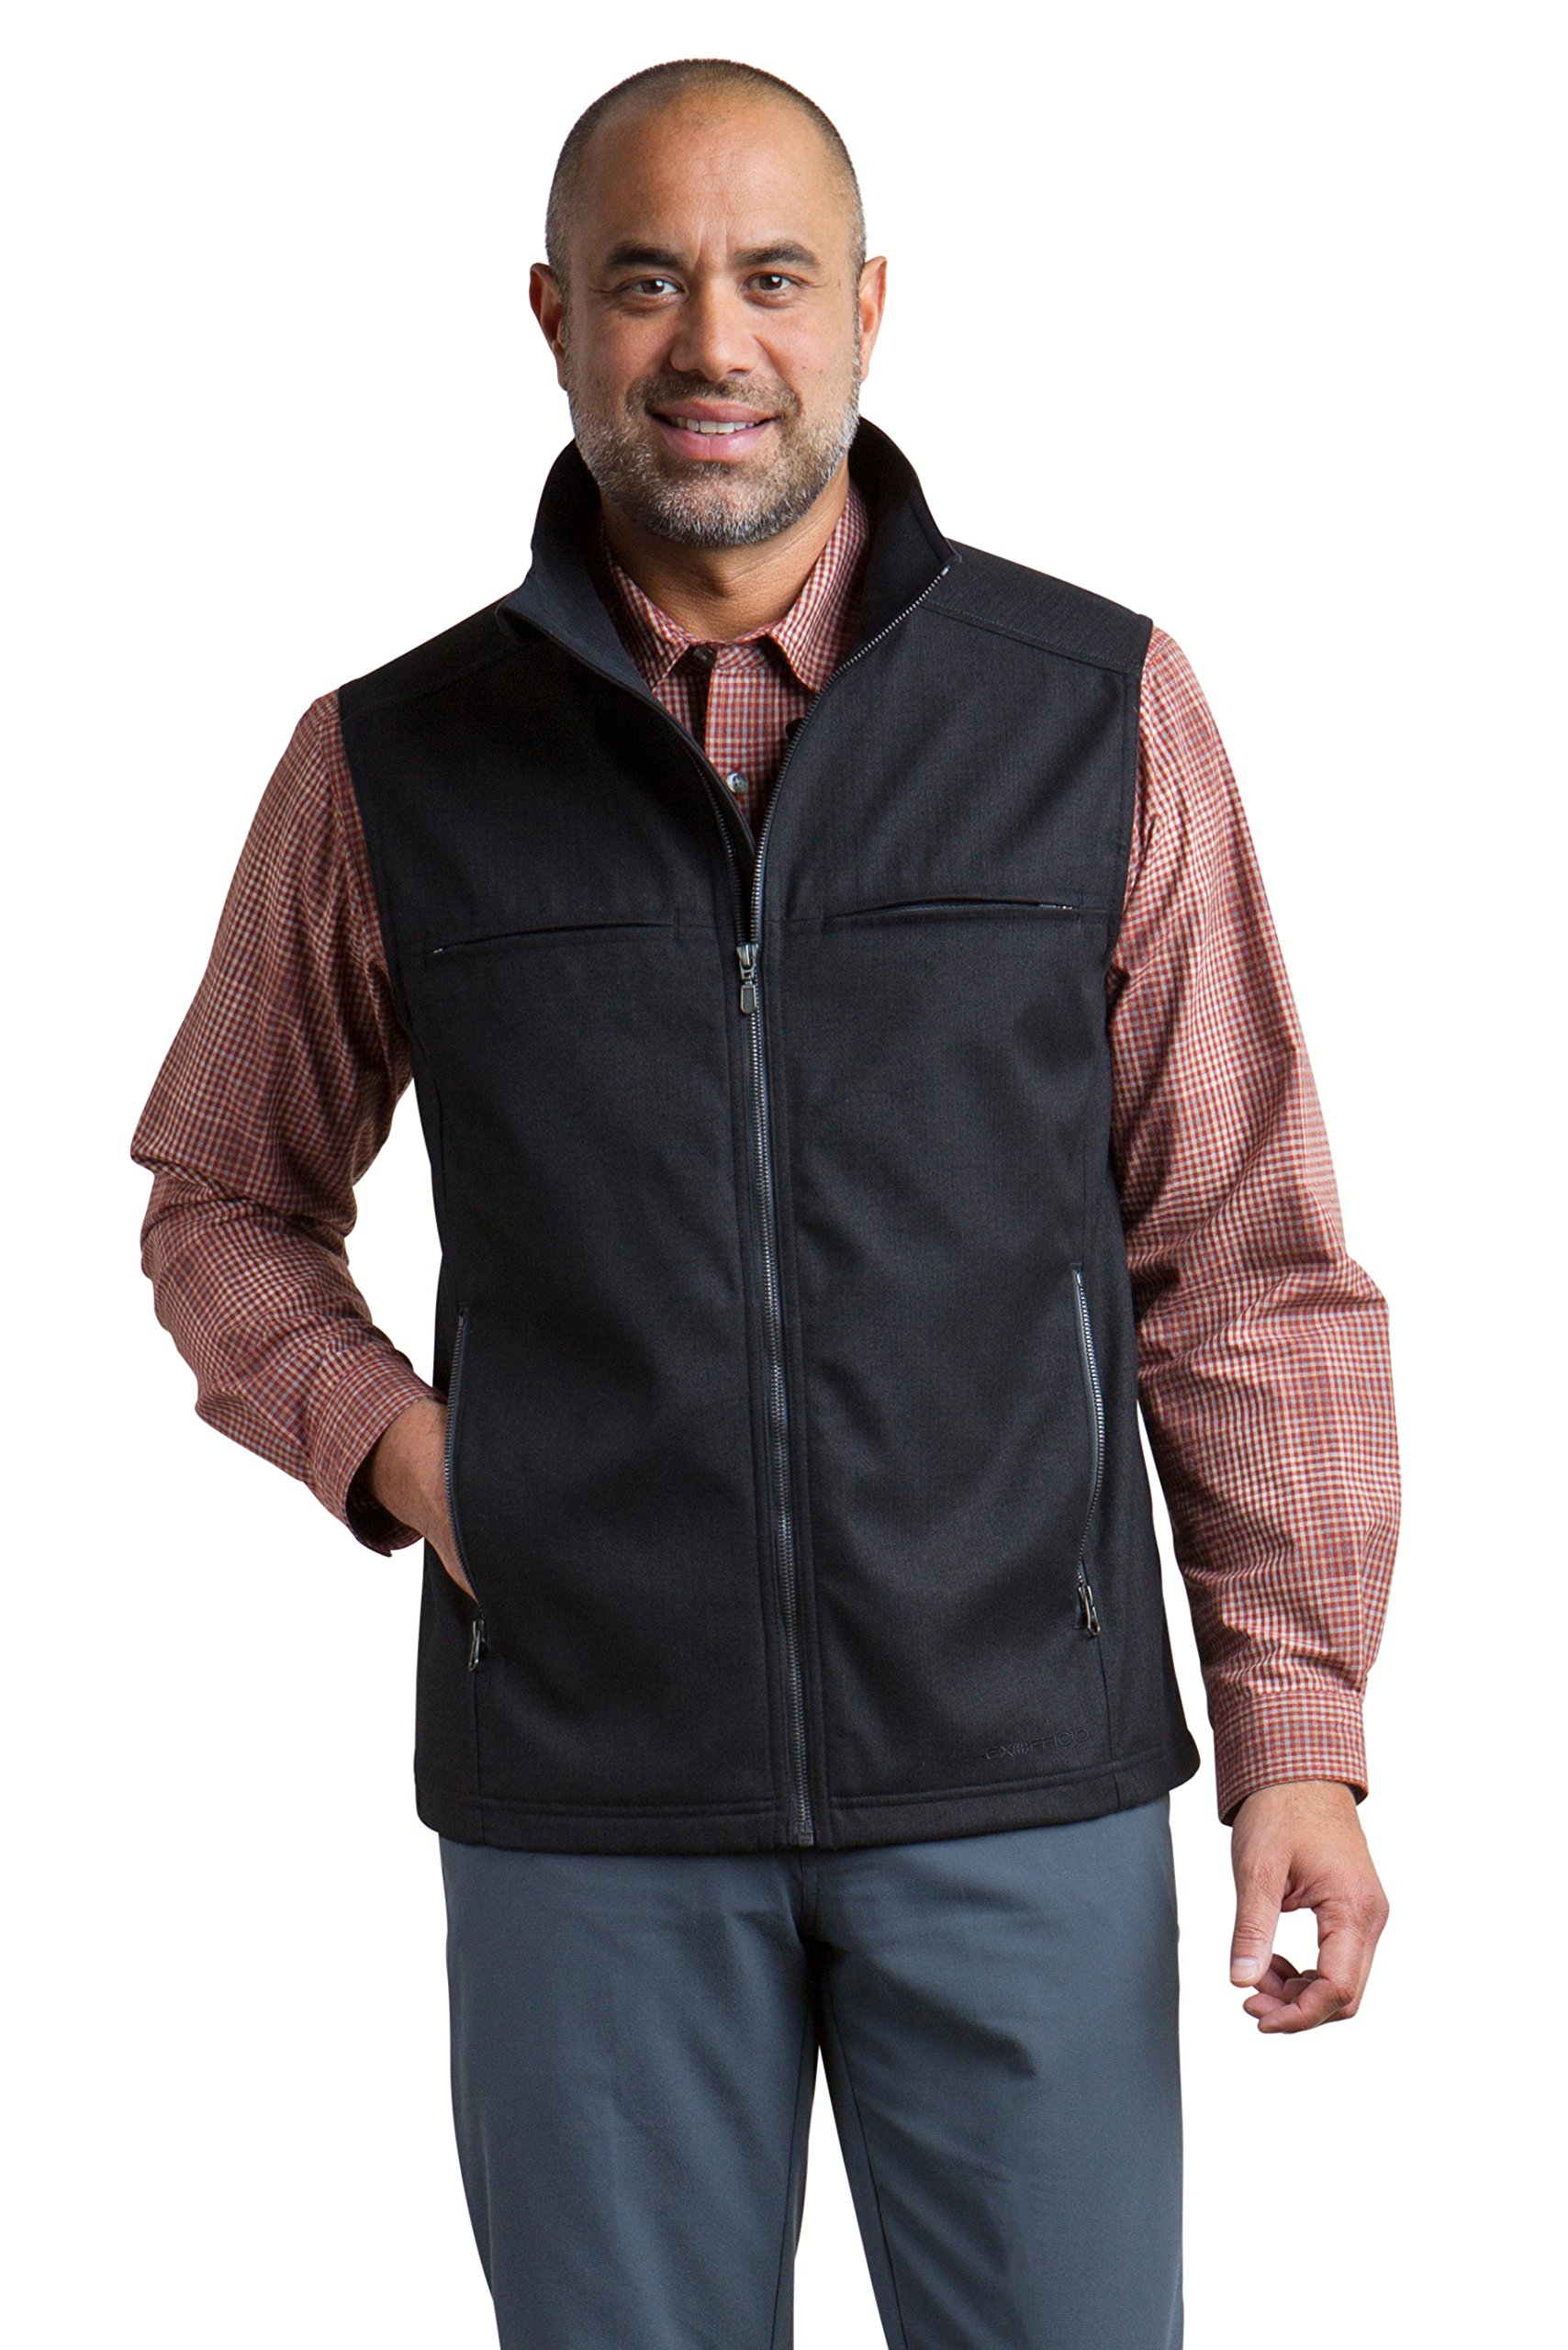 ExOfficio Men's Mackenzie Vest, Black, X-Large by ExOfficio